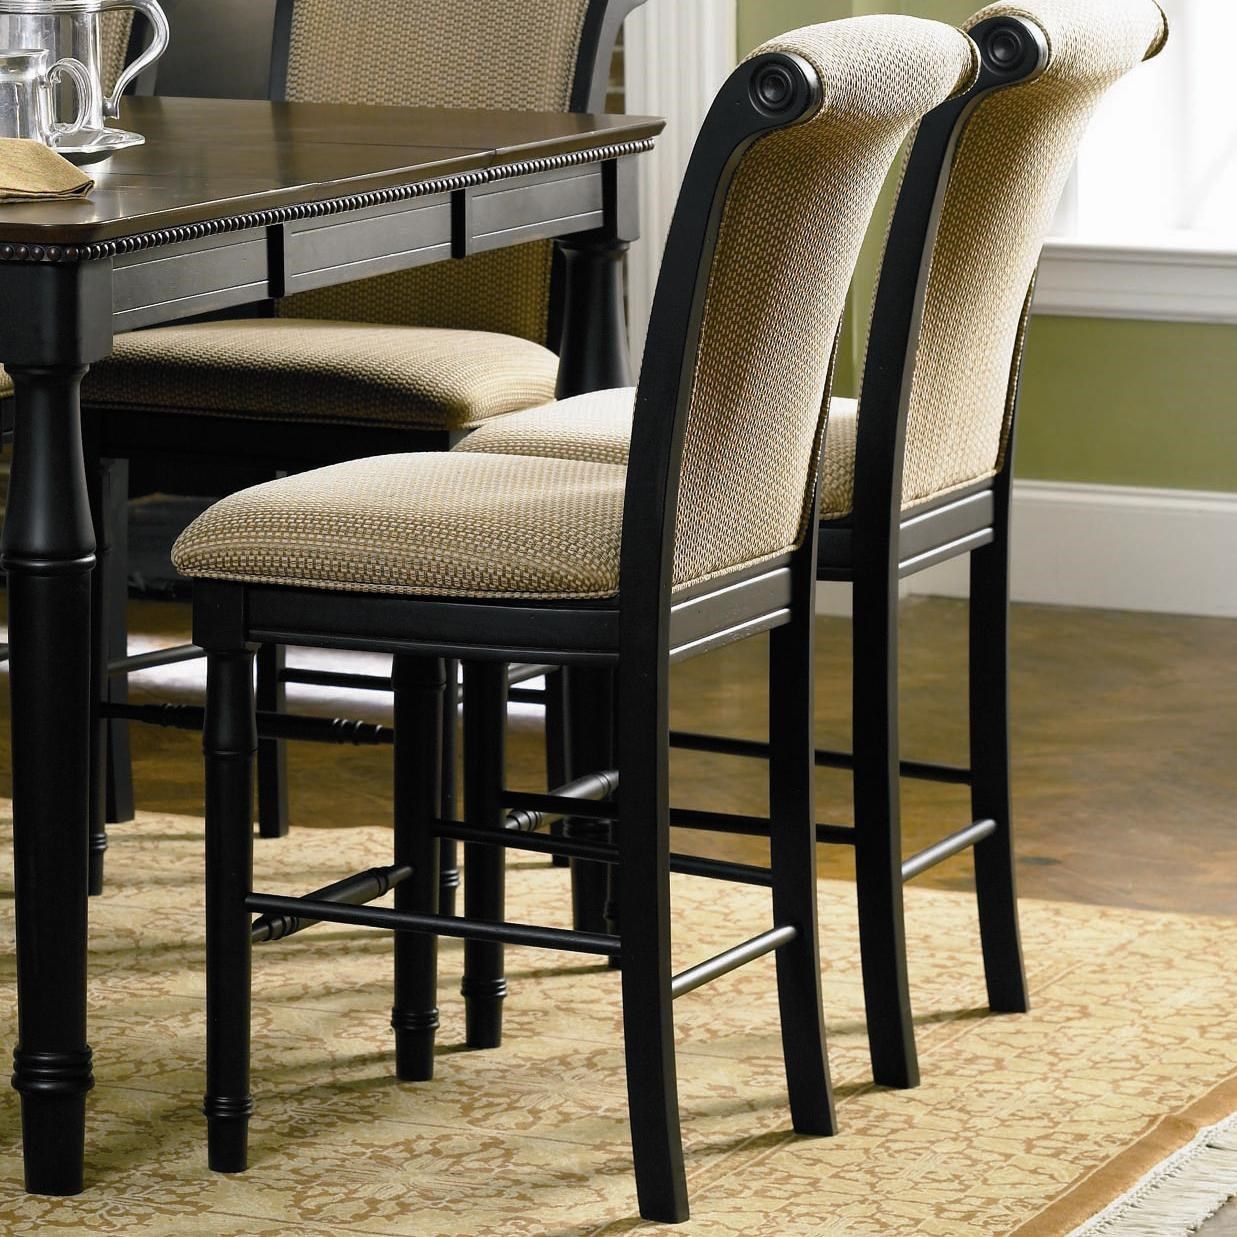 Coaster Cabrillo 101829 Bar Stool Del Sol Furniture  : edgewood20101820101829 bjpgscalebothampwidth500ampheight500ampfsharpen25ampdown from www.delsolfurniture.com size 500 x 500 jpeg 79kB